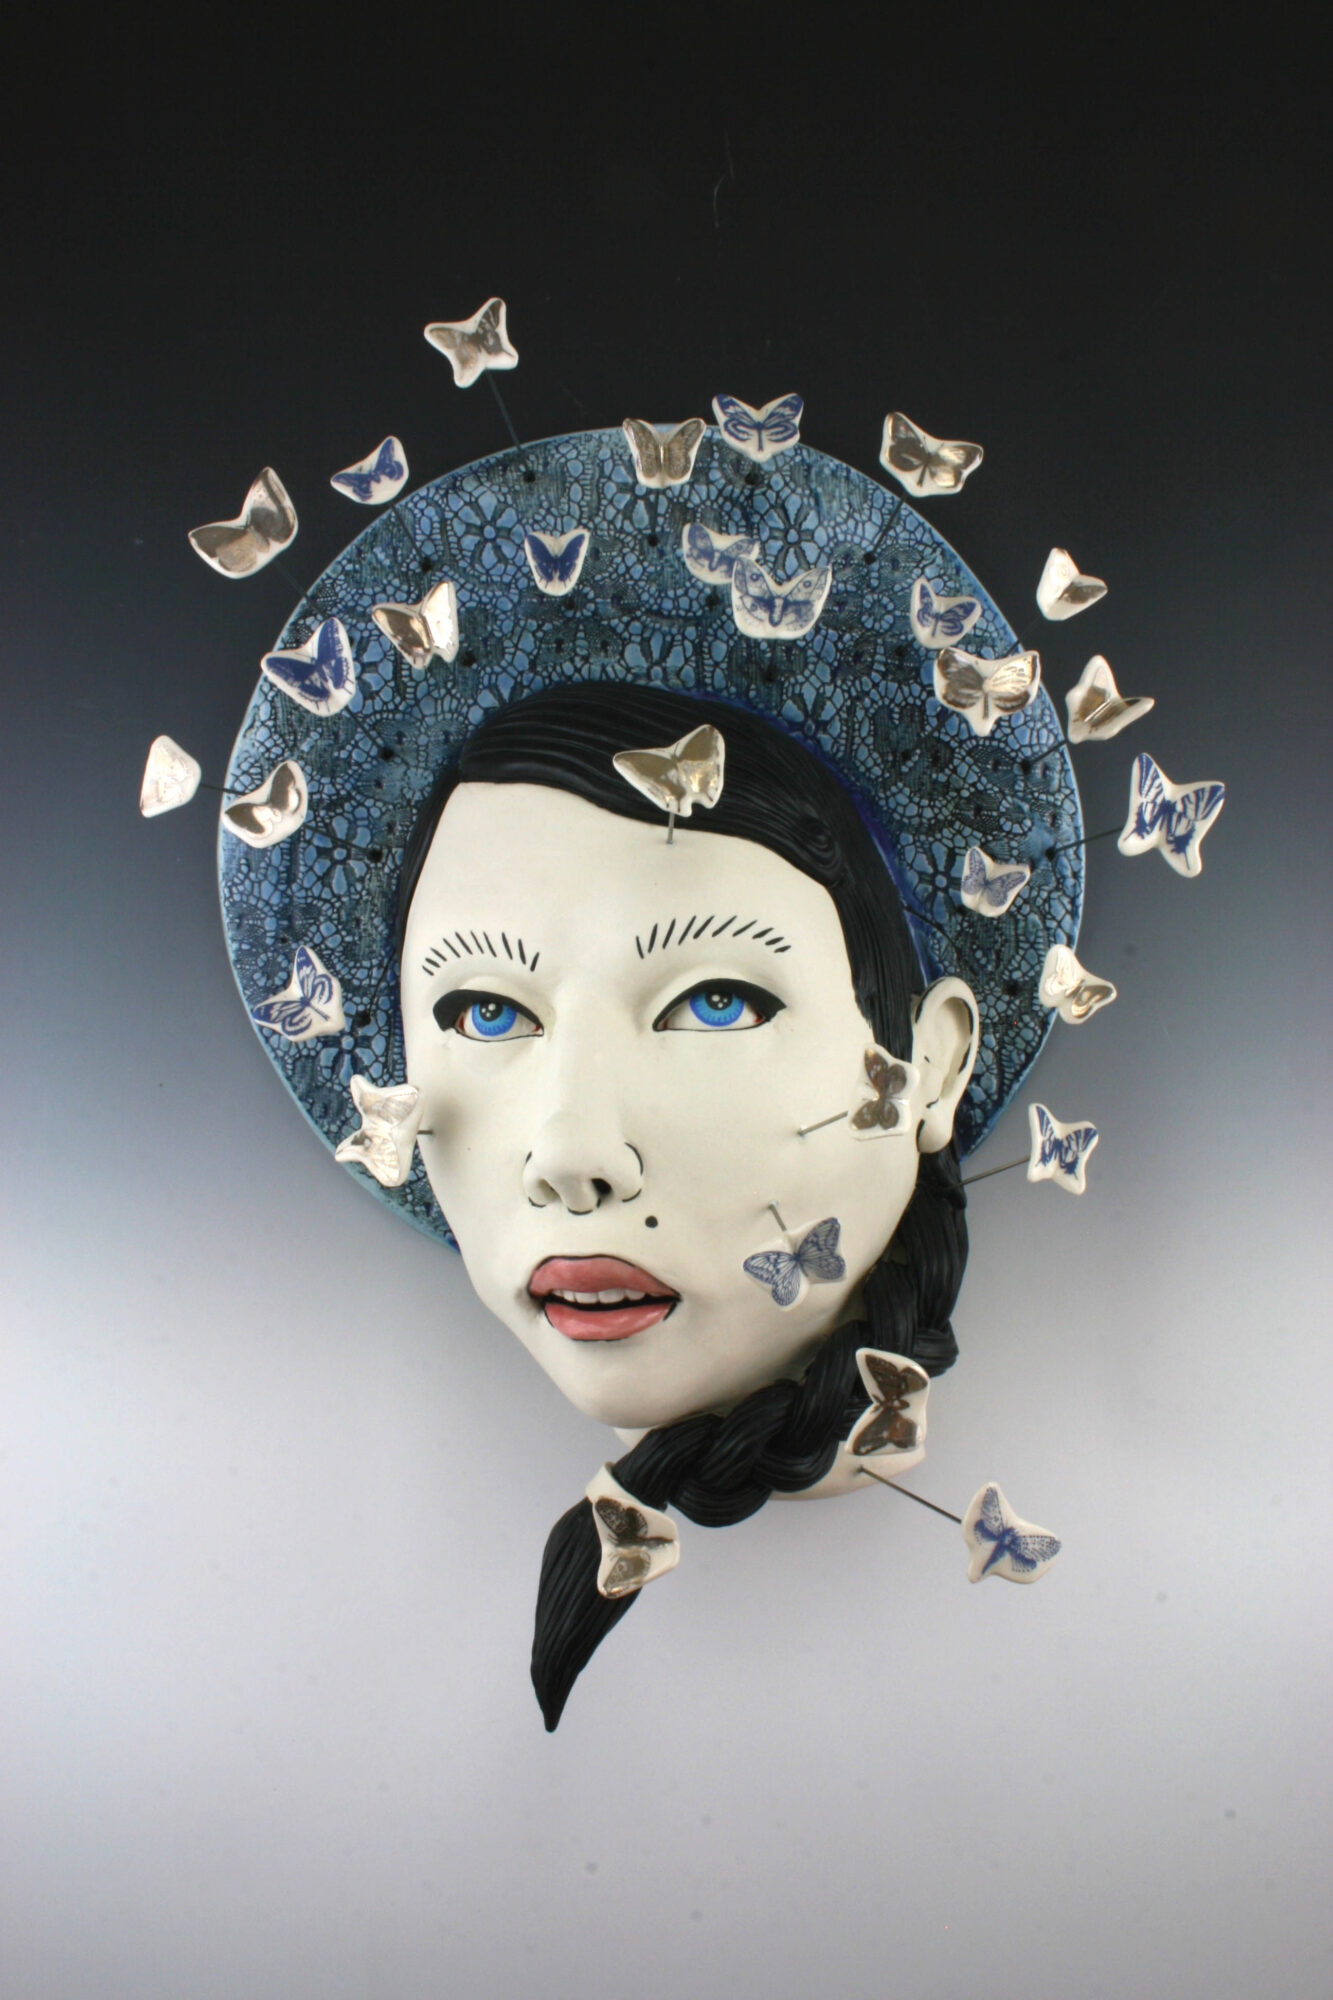 Ceramic artwork of woman's face and butterflies